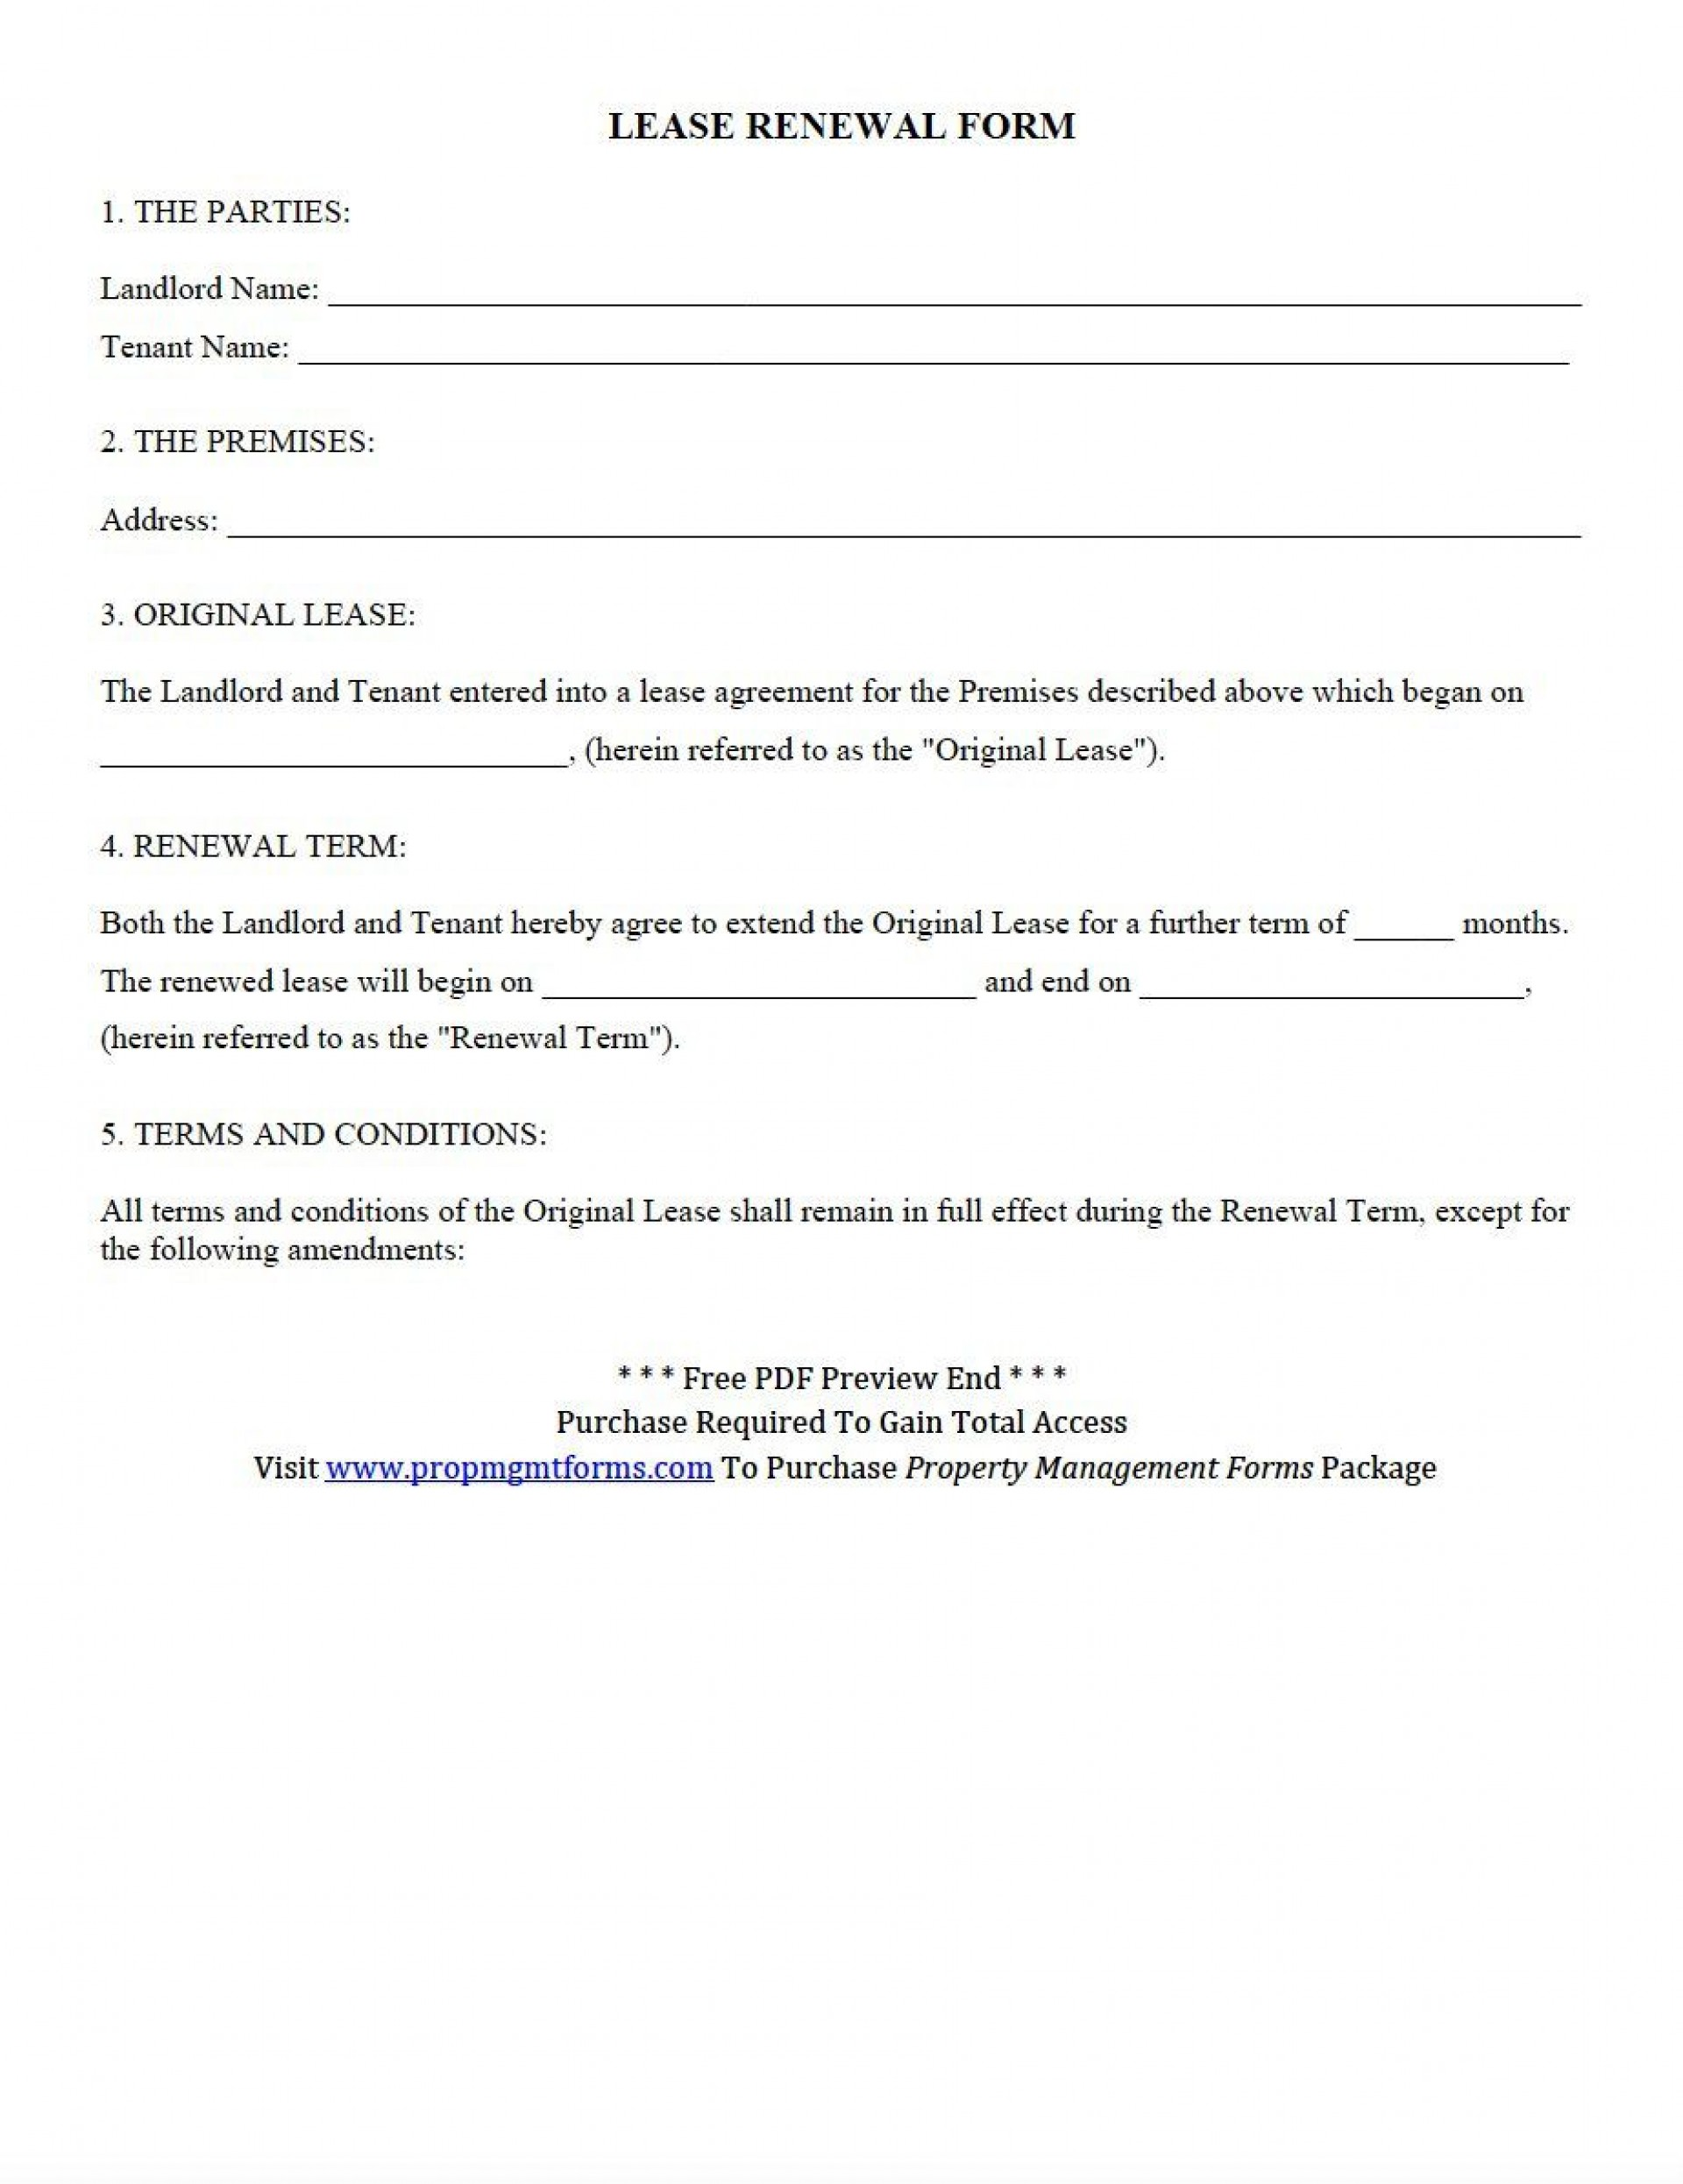 004 Impressive Property Management Agreement Template Pdf Image  Contract1920